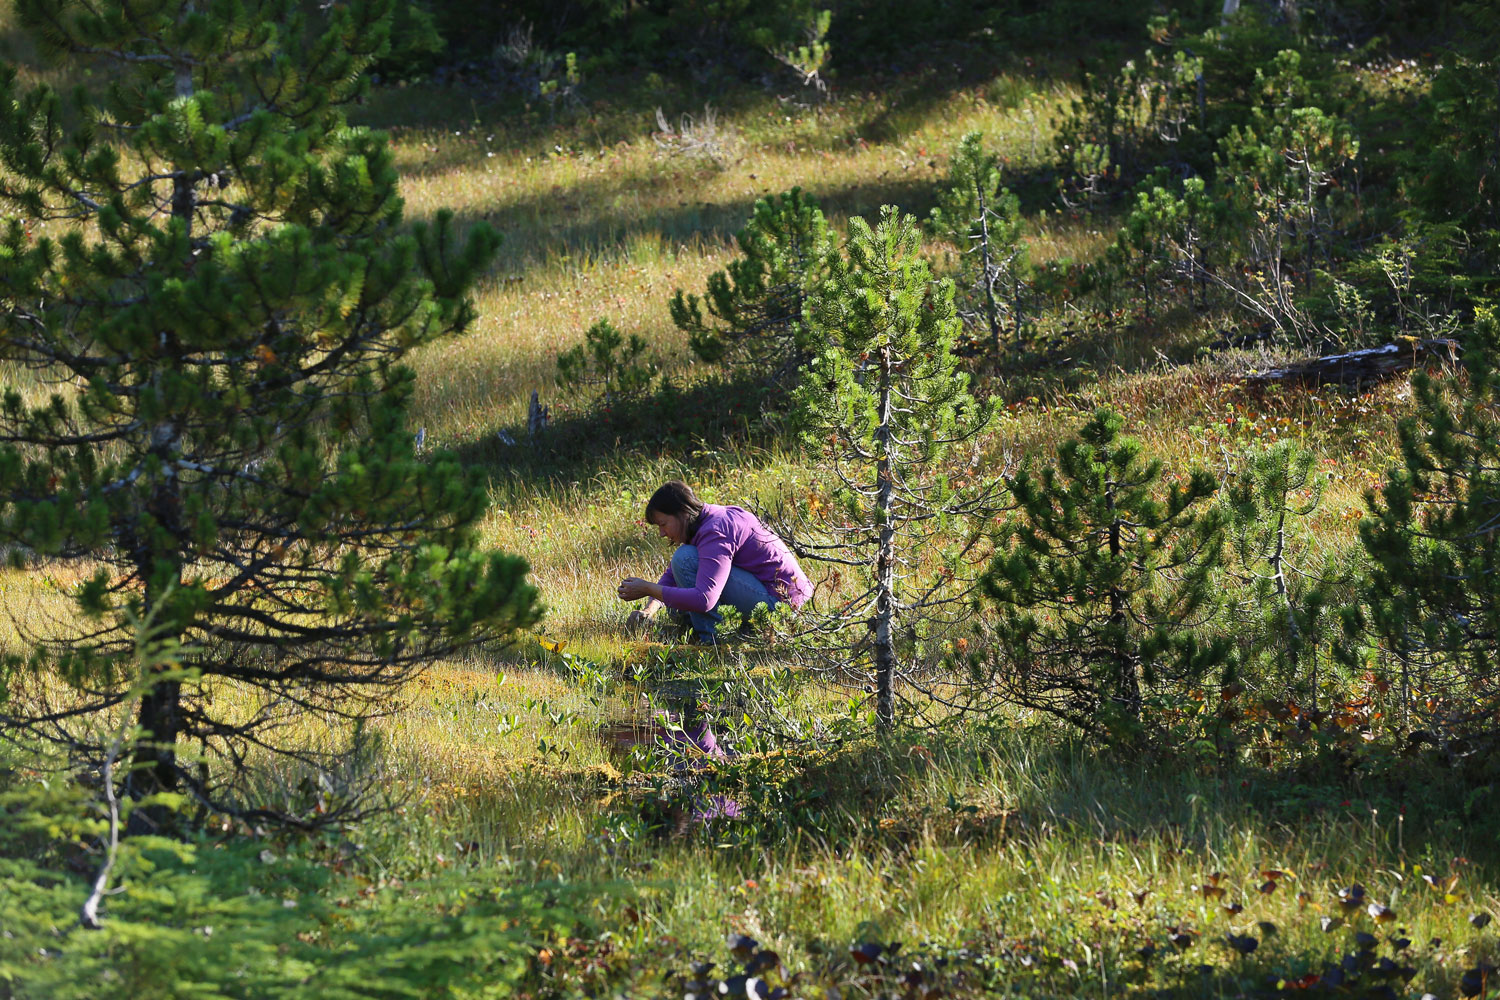 Picking medicinal plants in the muskeg. My sweetie took this picture.